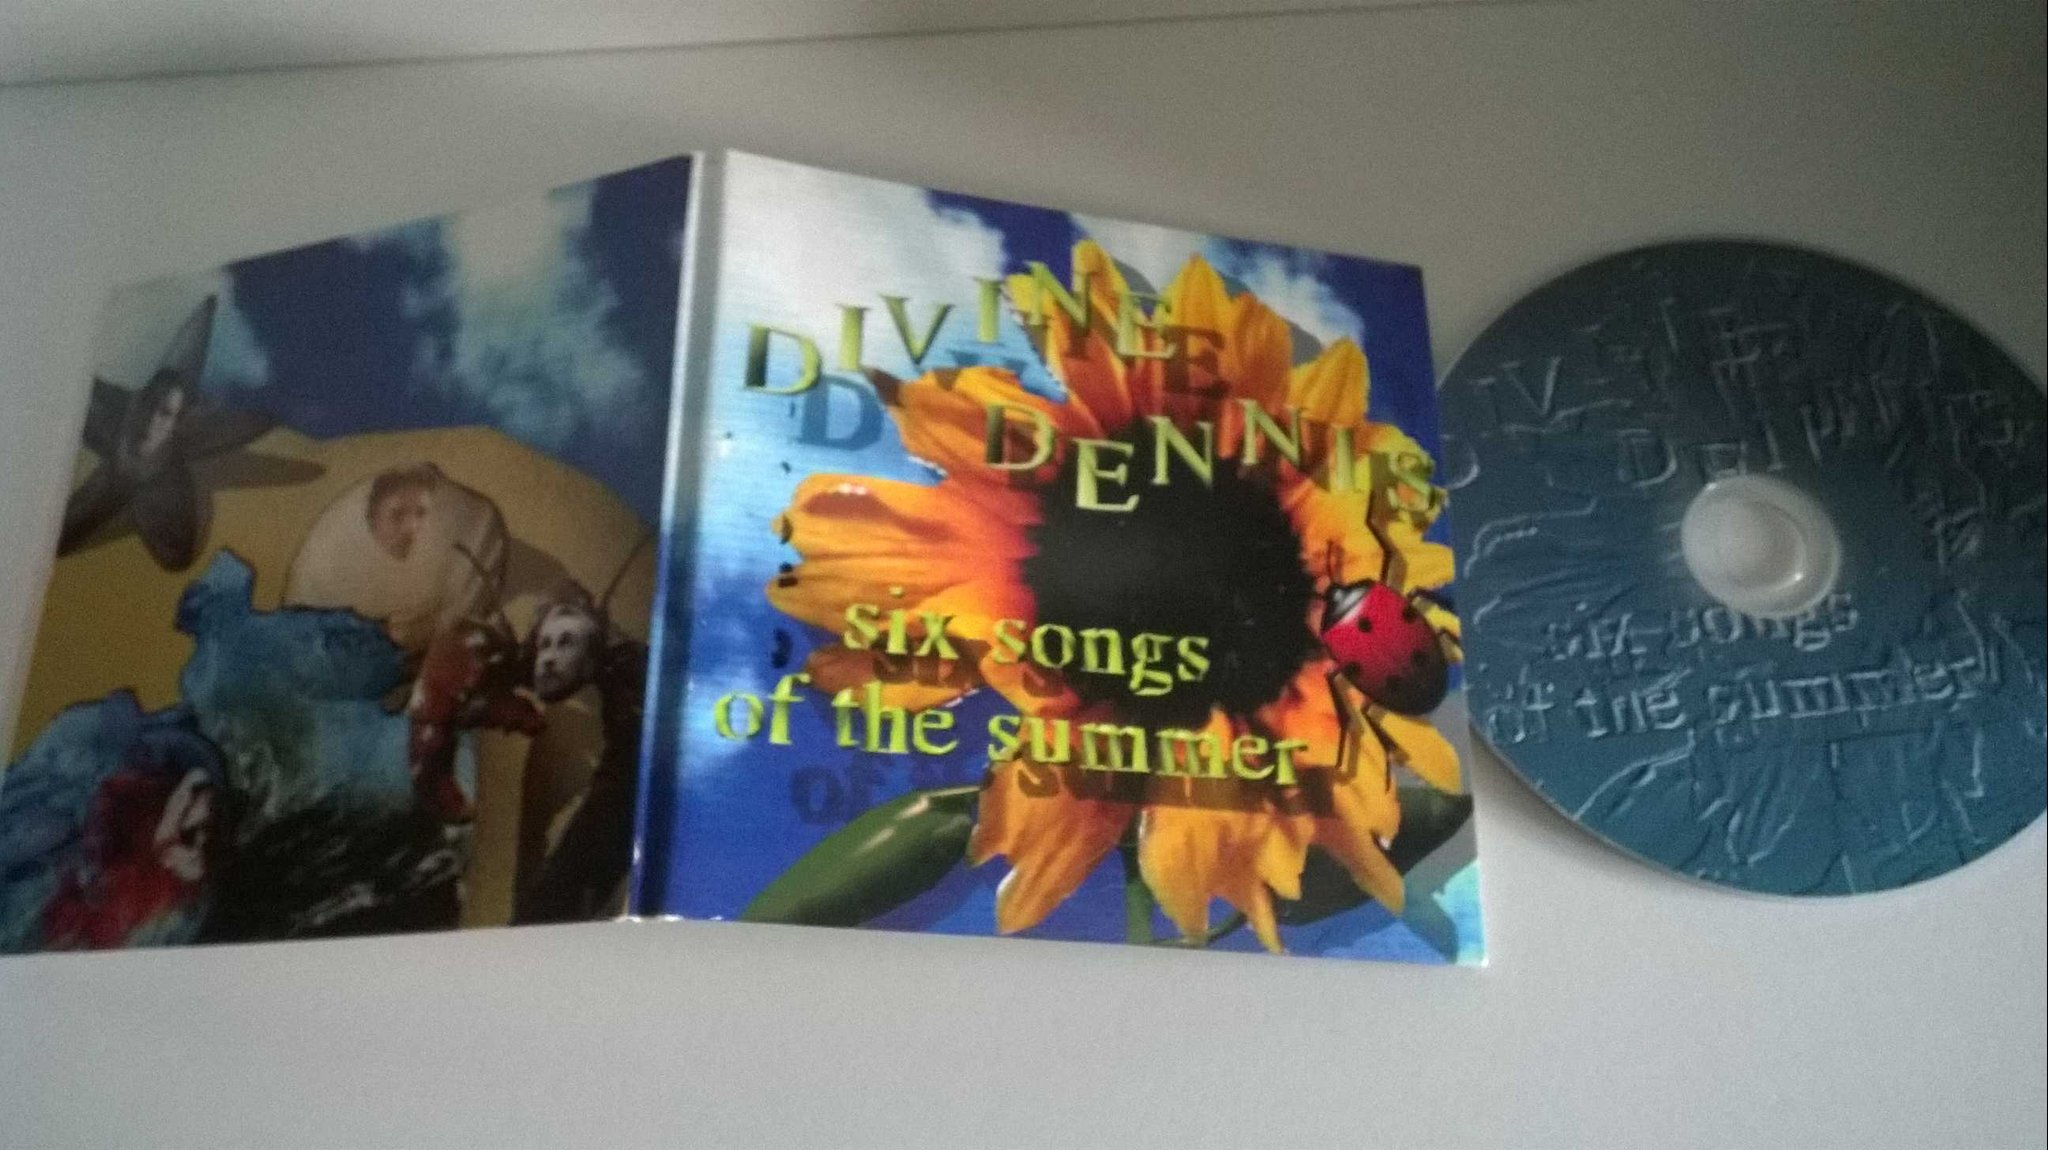 Divine Dennis - Six songs of the summer, single CD